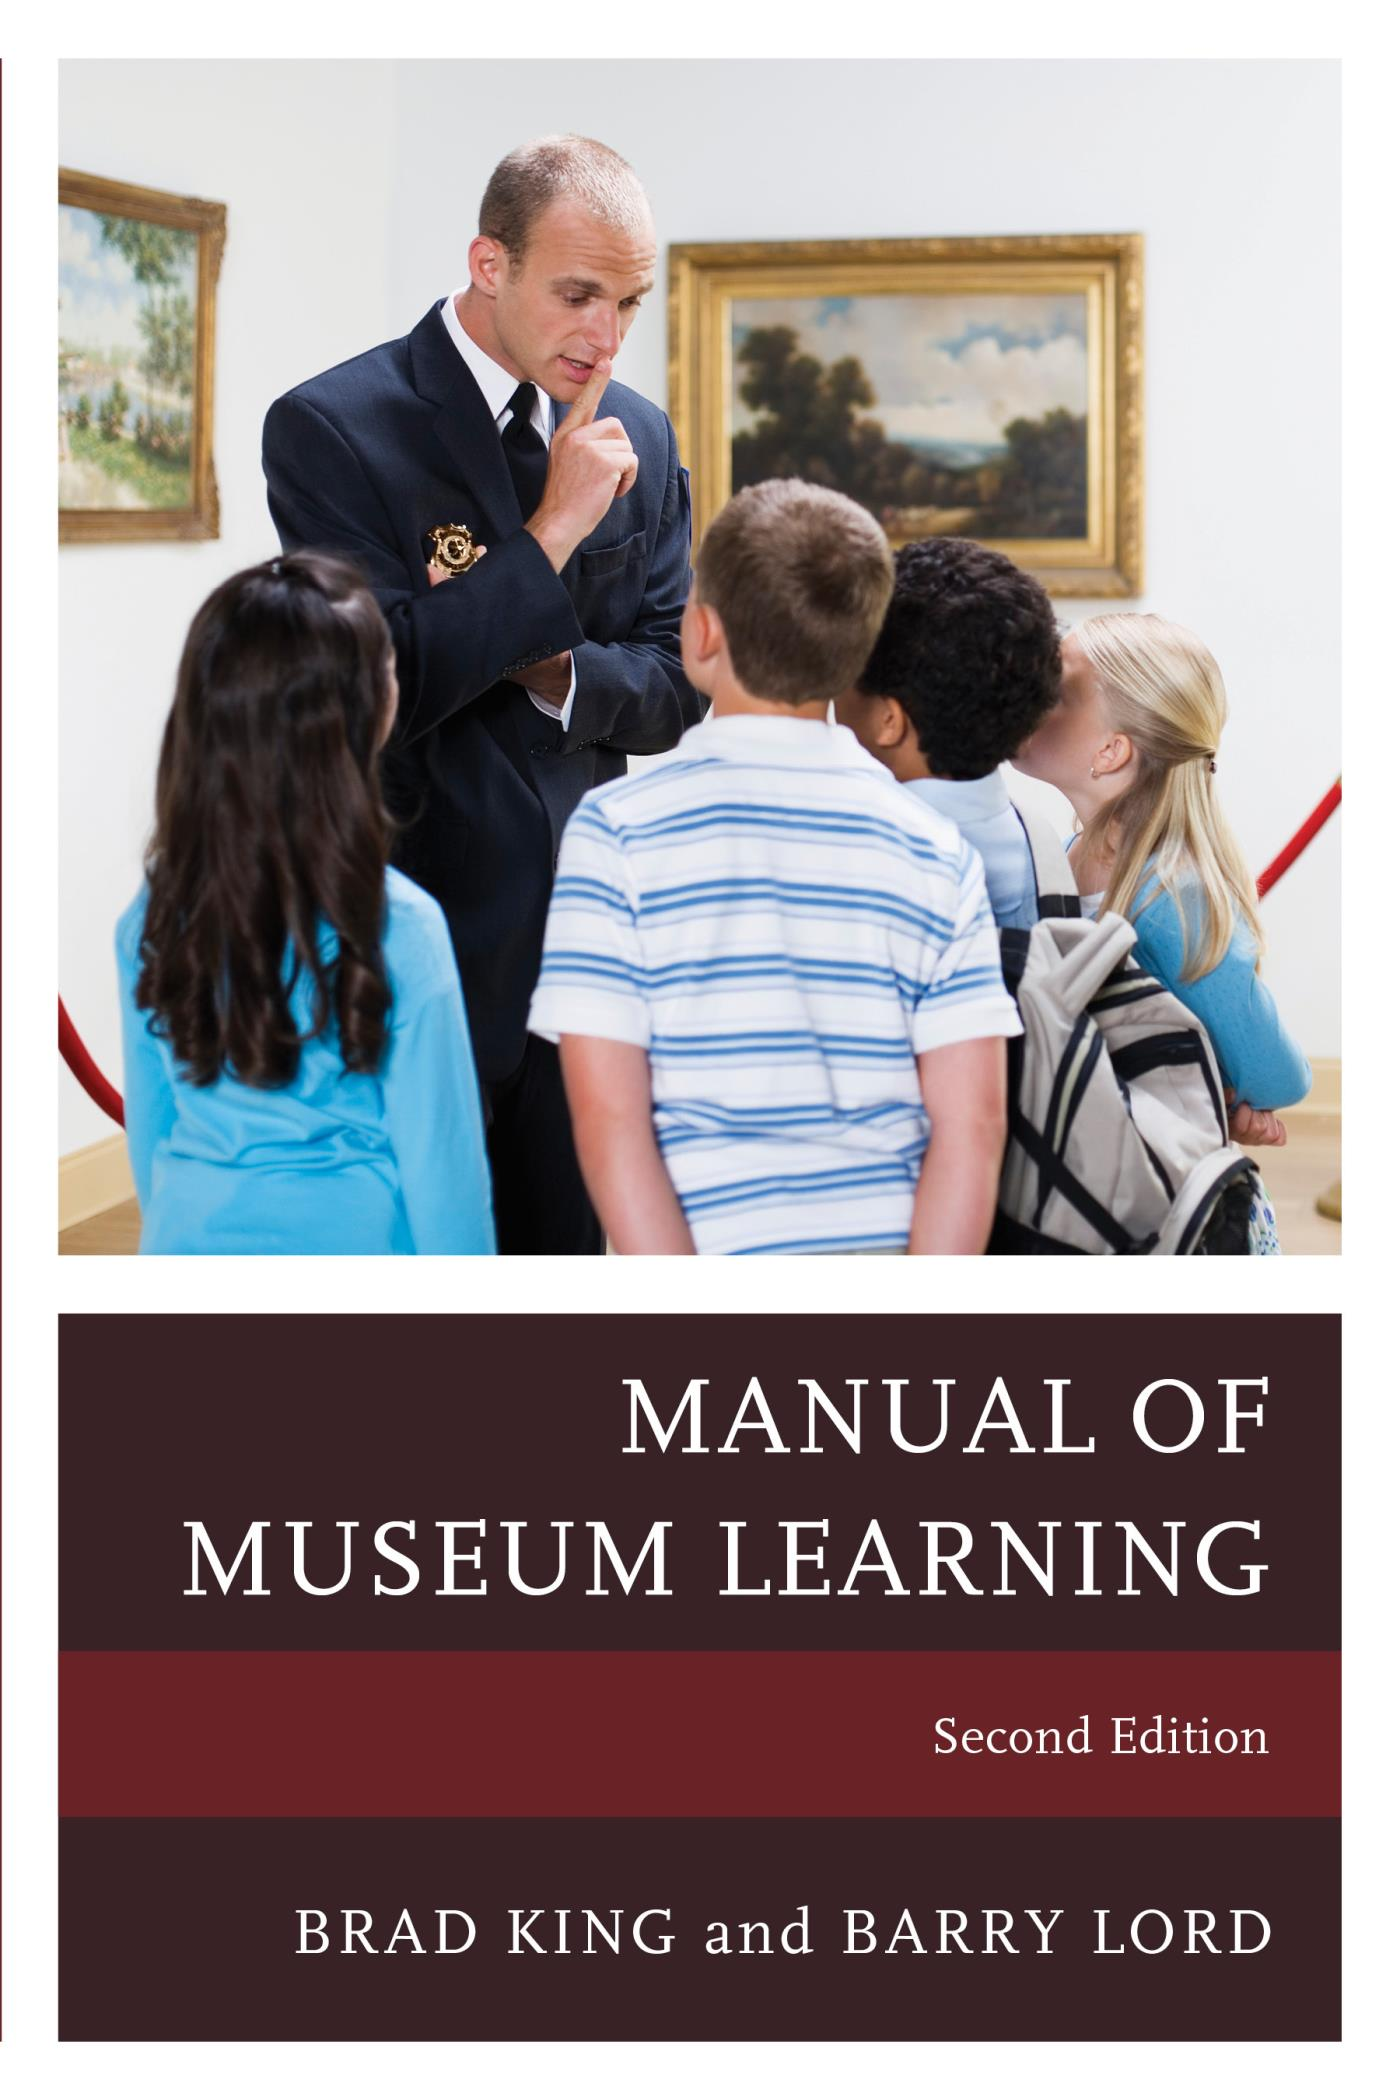 Download Ebook The Manual of Museum Learning (2nd ed.) by Brad King Pdf